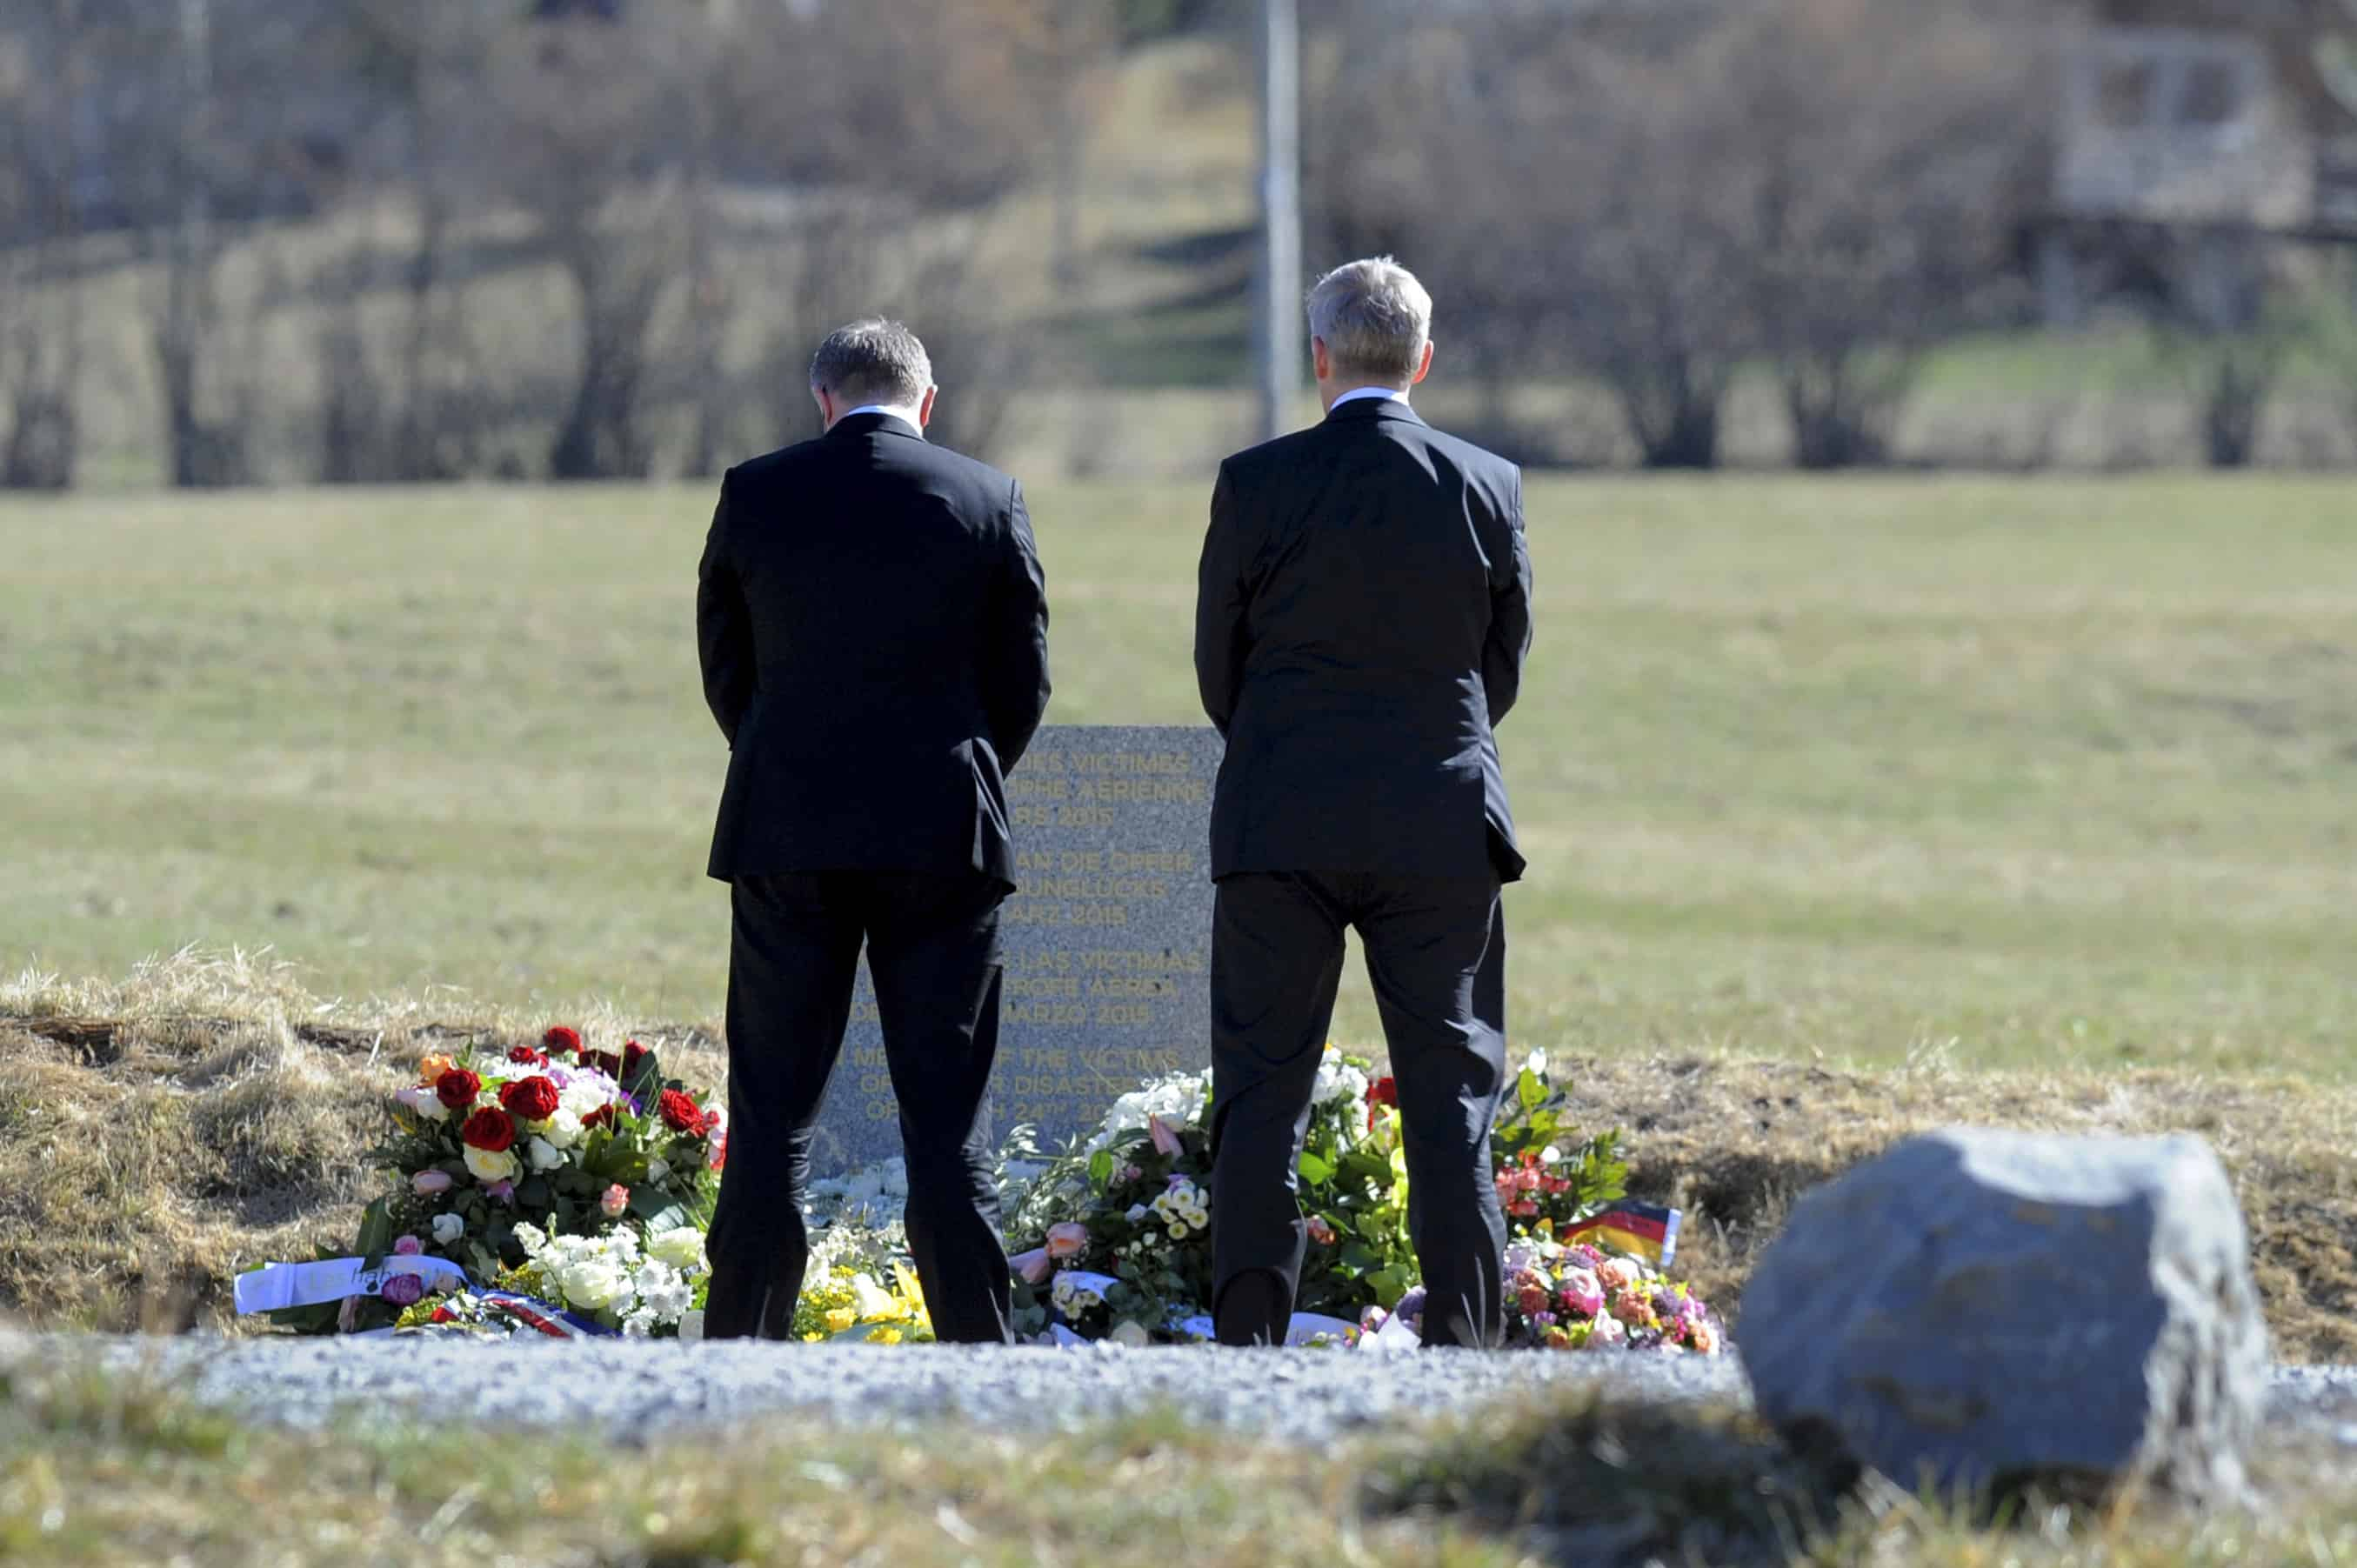 Lufthansa CEO Carsten Spohr, left, and Germanwings CEO Thomas Winkelmann lay a wreath near a stele in memory of the victims of the Germanwings Airbus A320 crash.